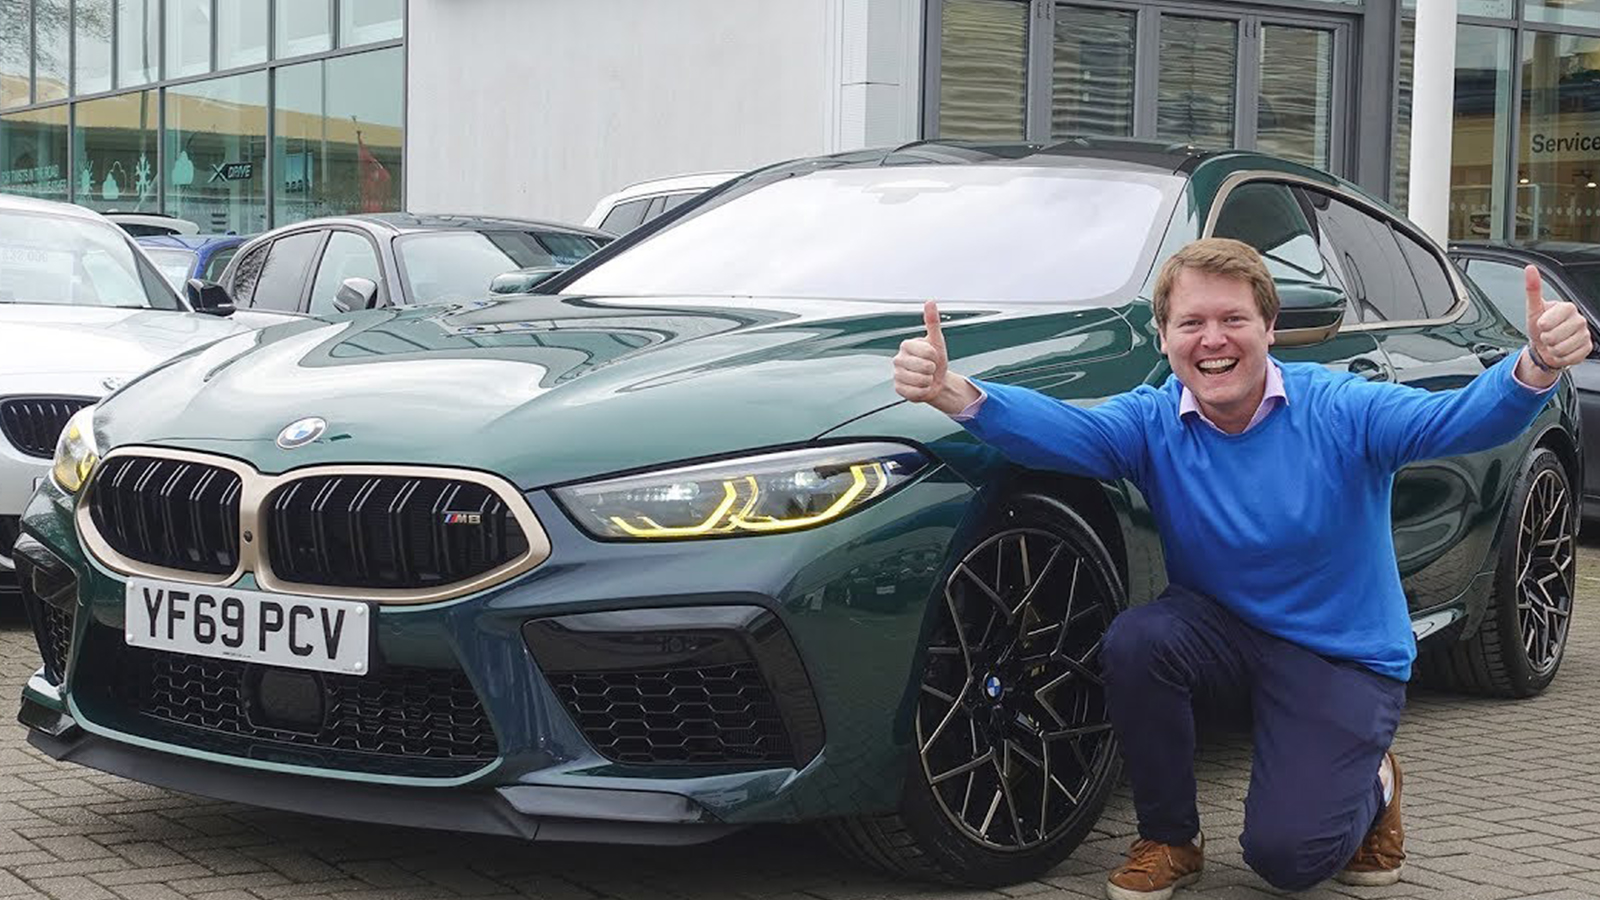 Image of Shmee150 with his green BMW M8